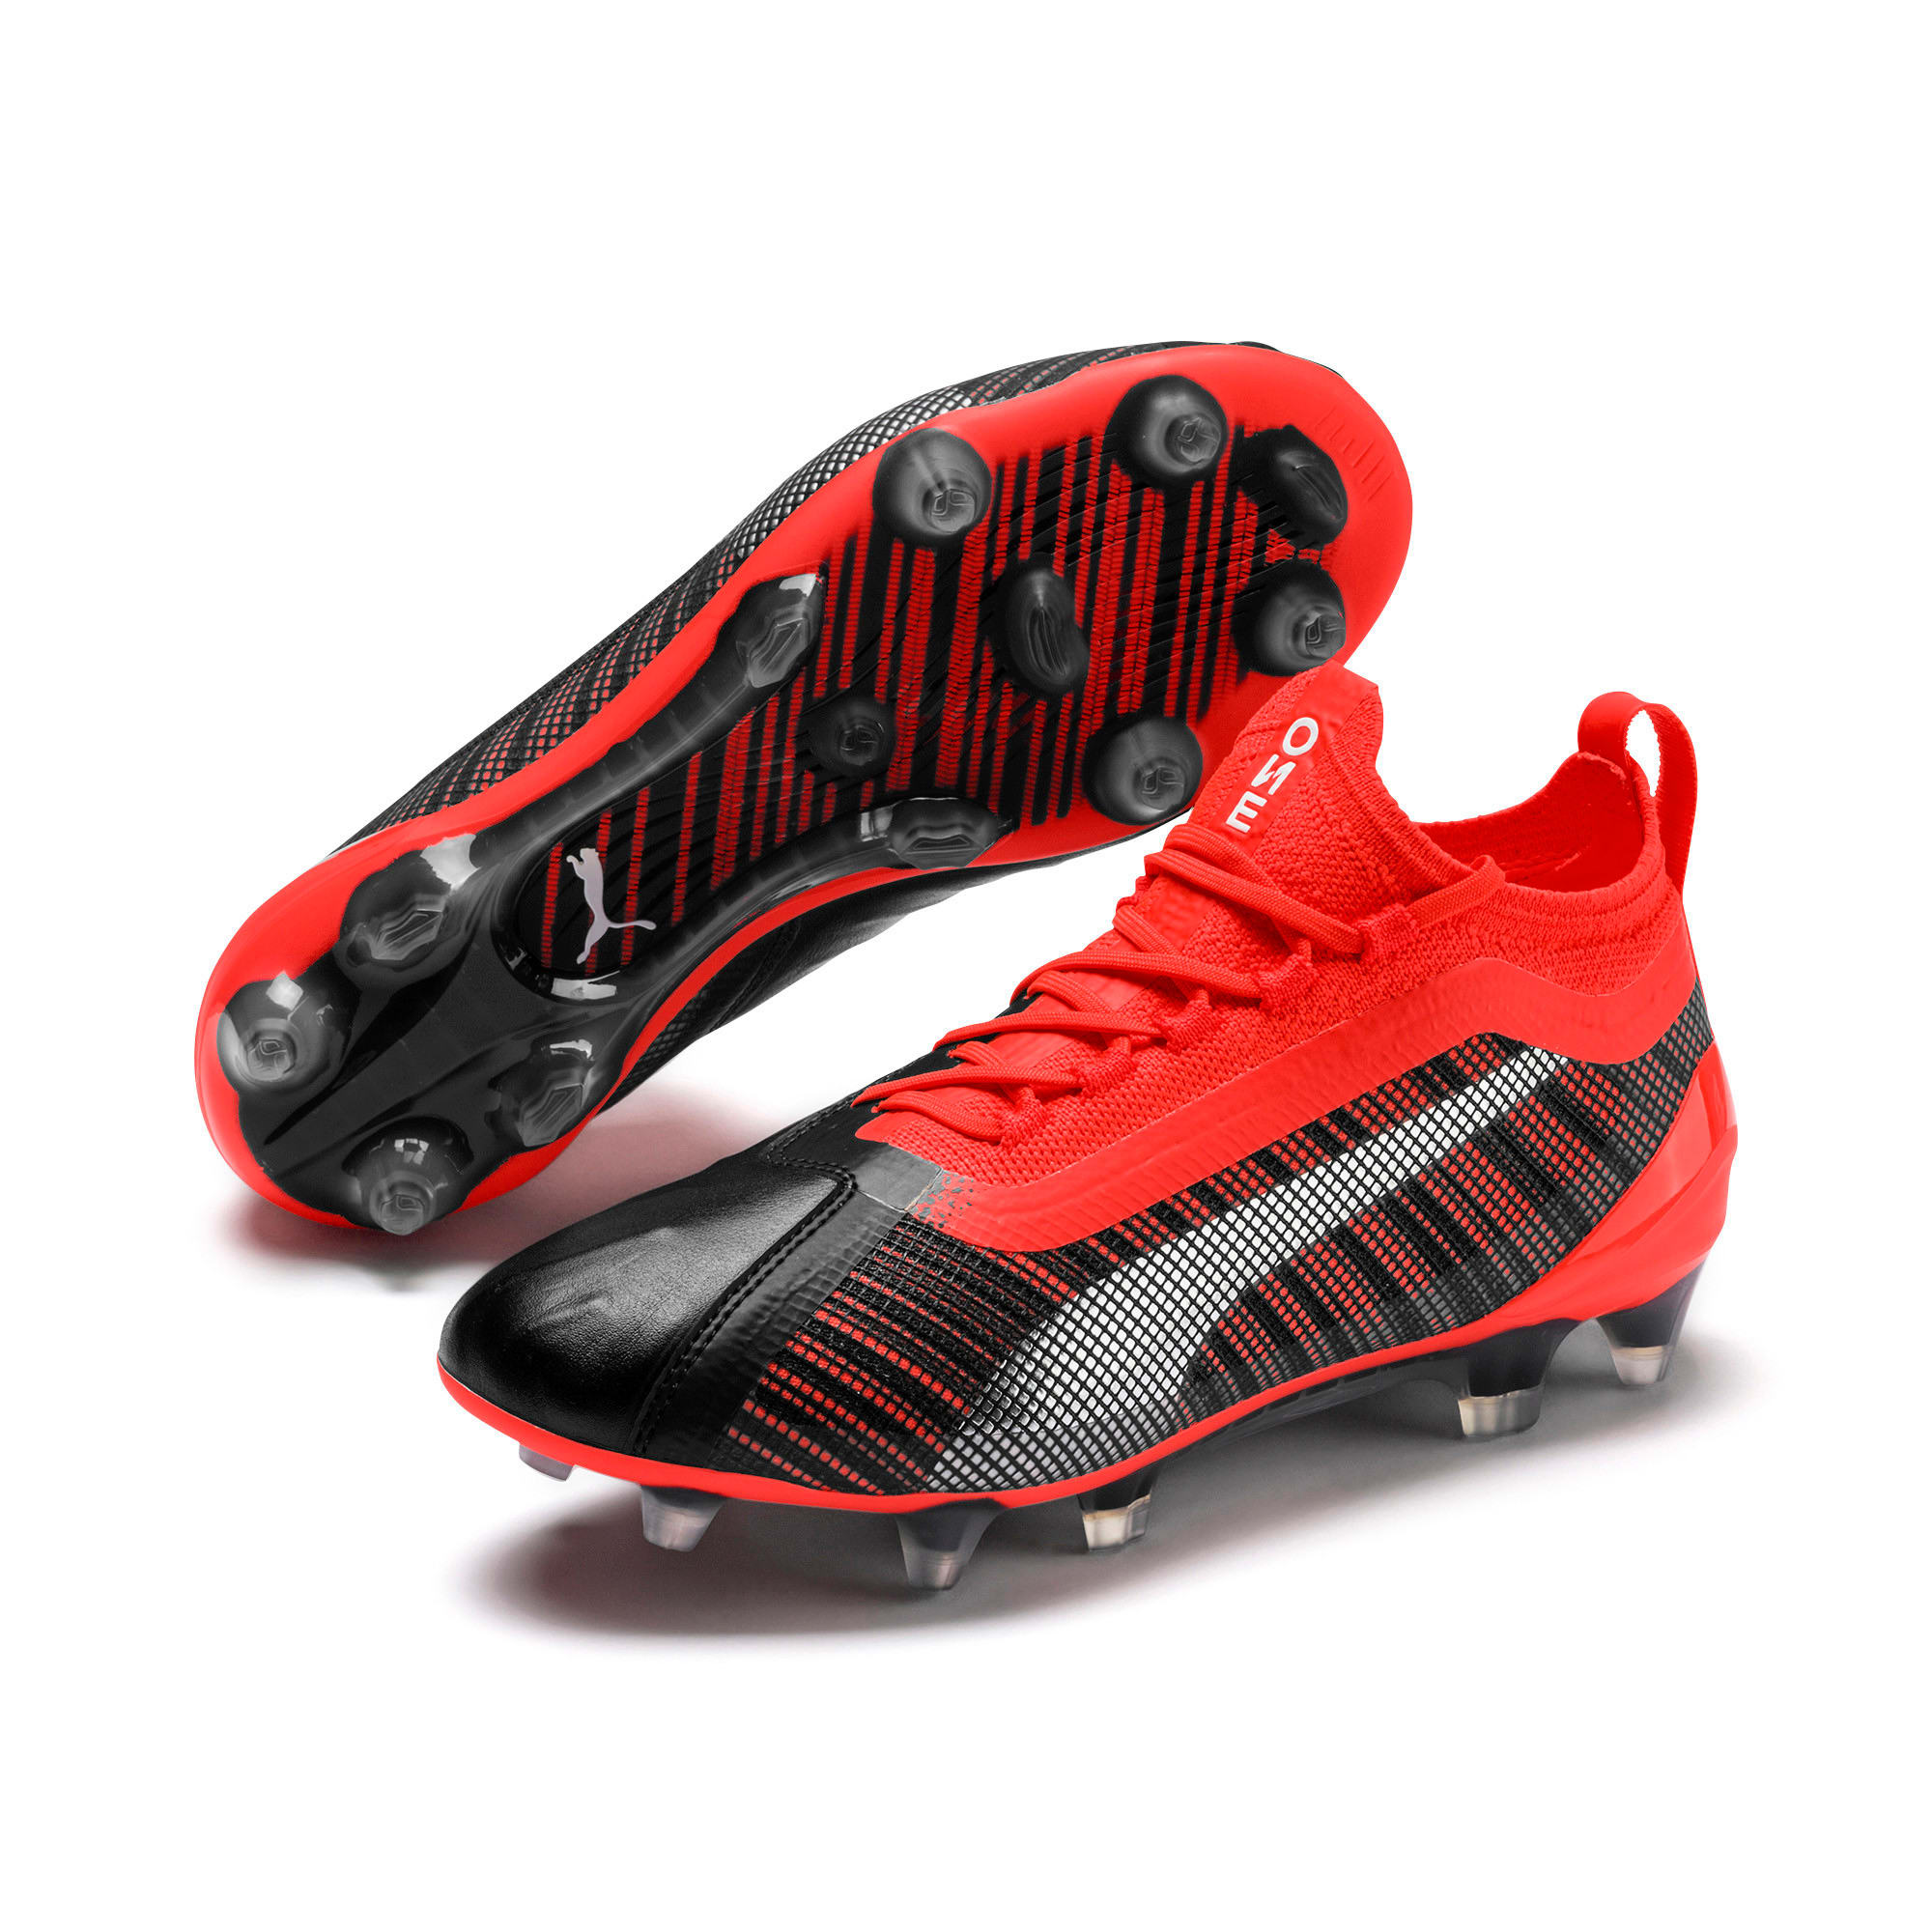 Thumbnail 2 of PUMA ONE 5.1 Youth Football Boots, Black-Nrgy Red-Aged Silver, medium